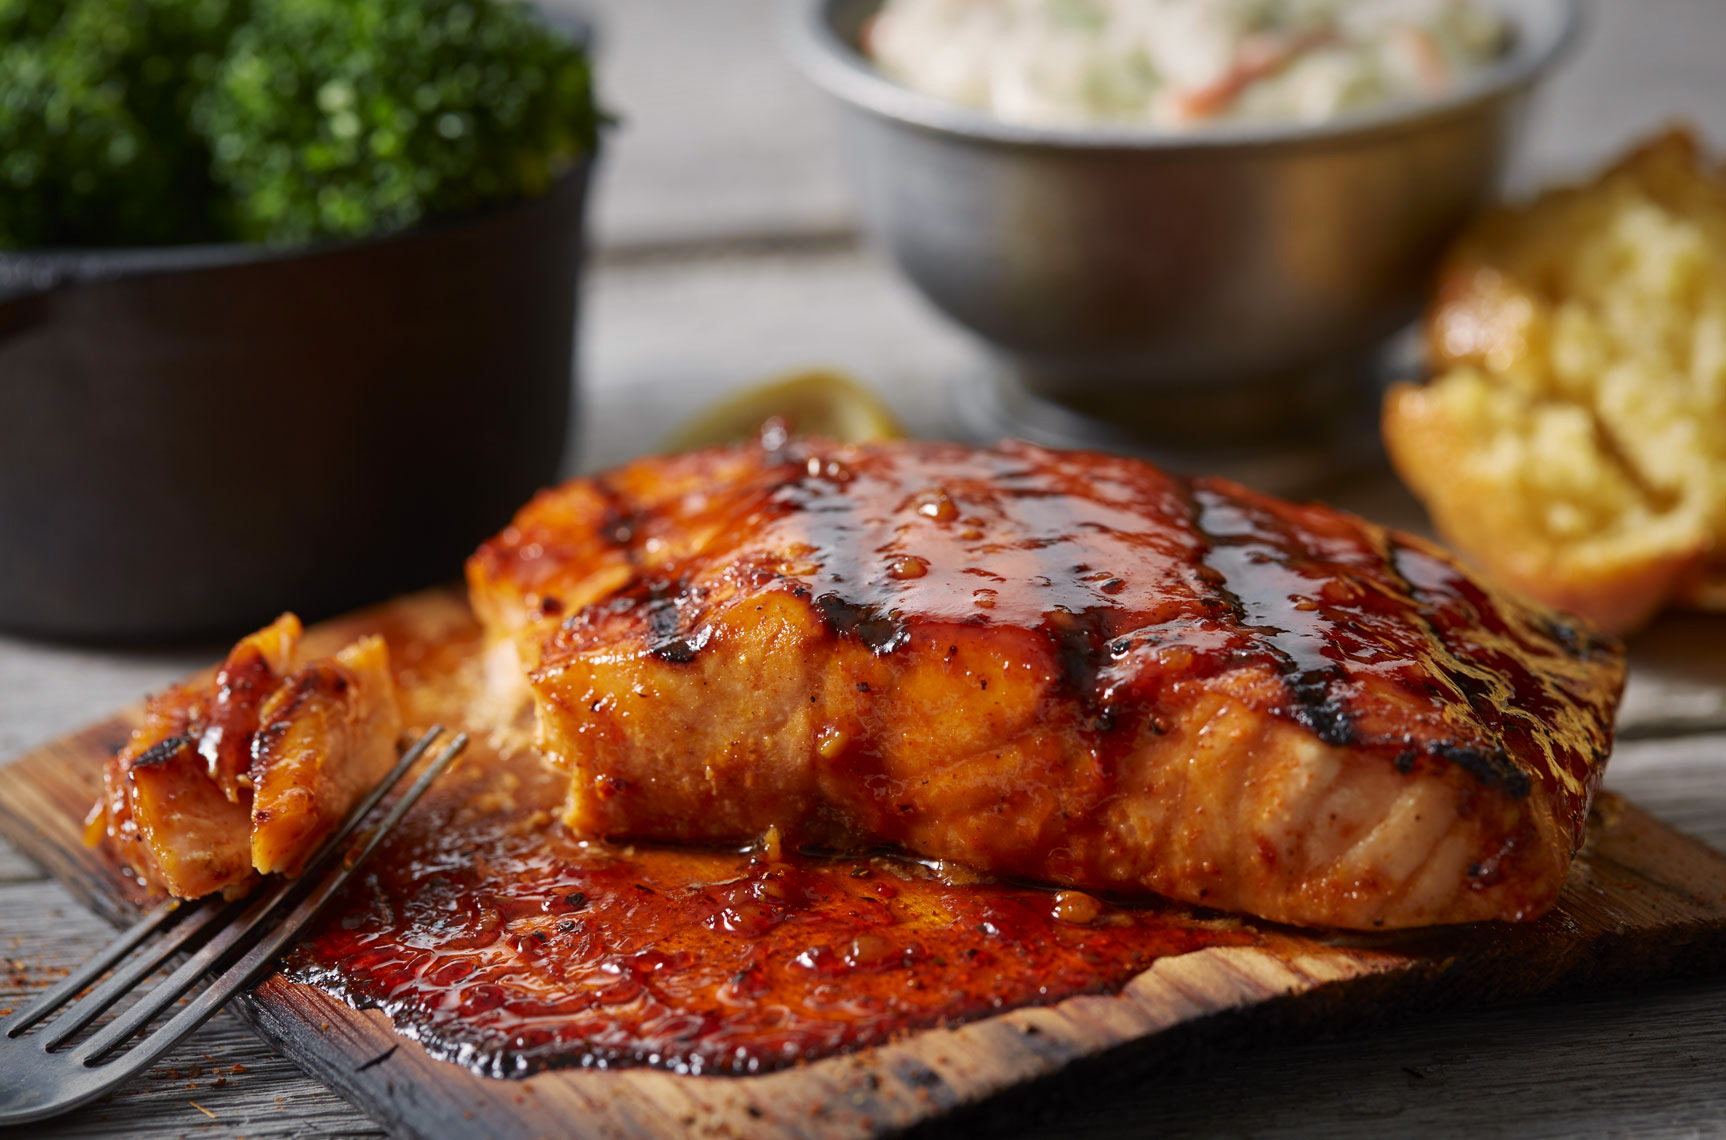 Cedar grilled salmon with glaze.  Various sides in background.  Food photography, InsideOut Studios.